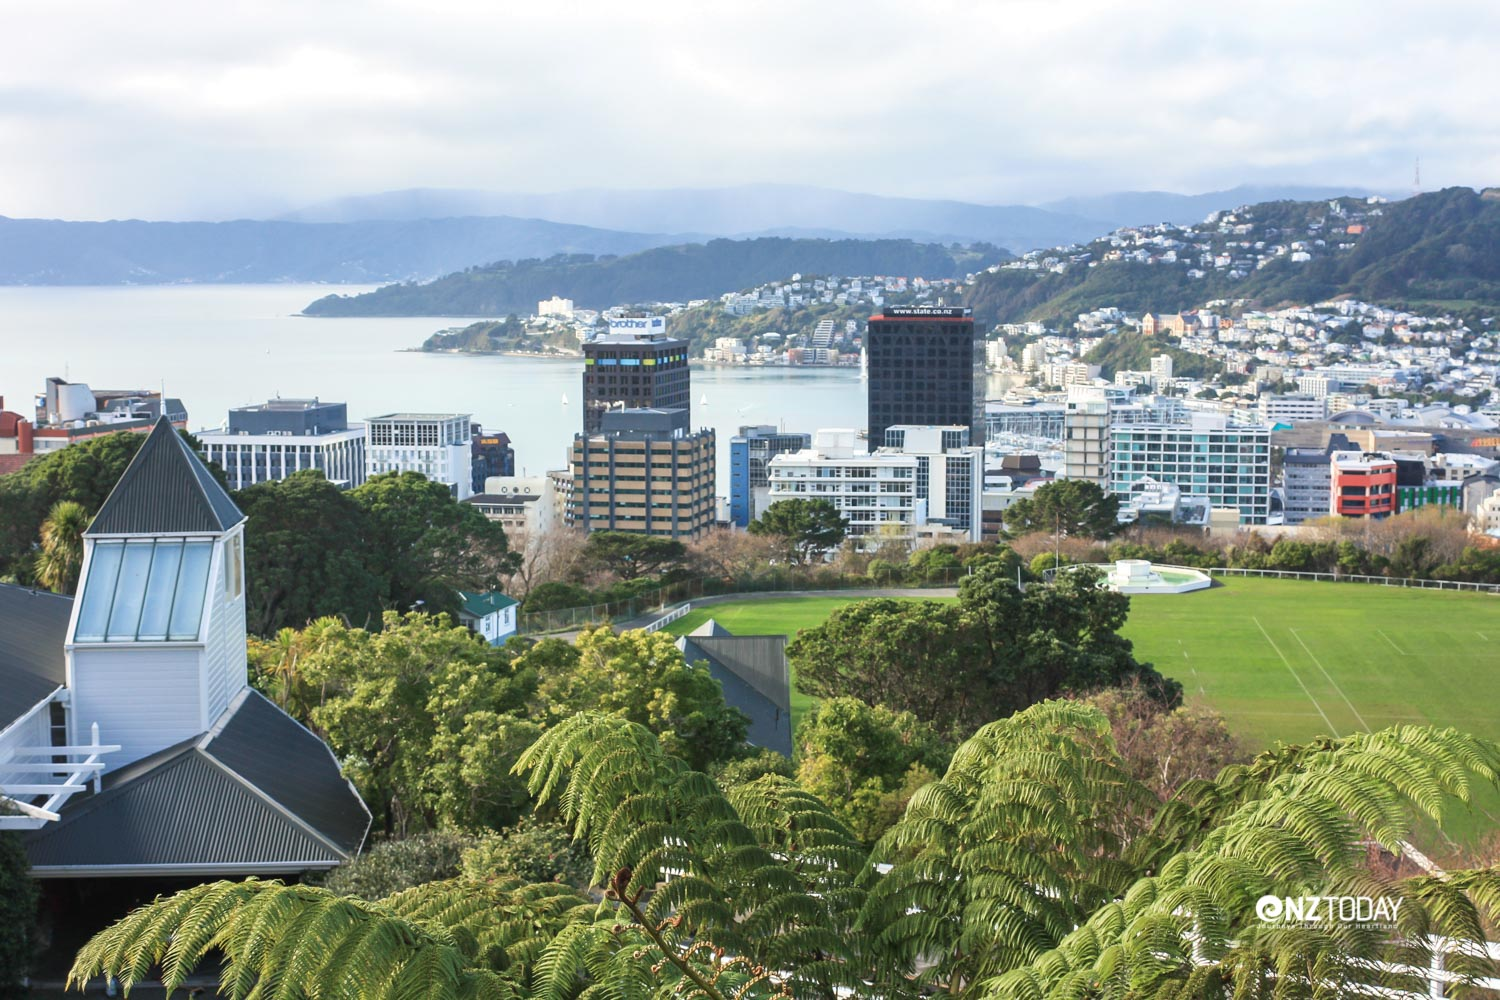 Expansive views of Wellington Harbour from the cable car are truly memorable